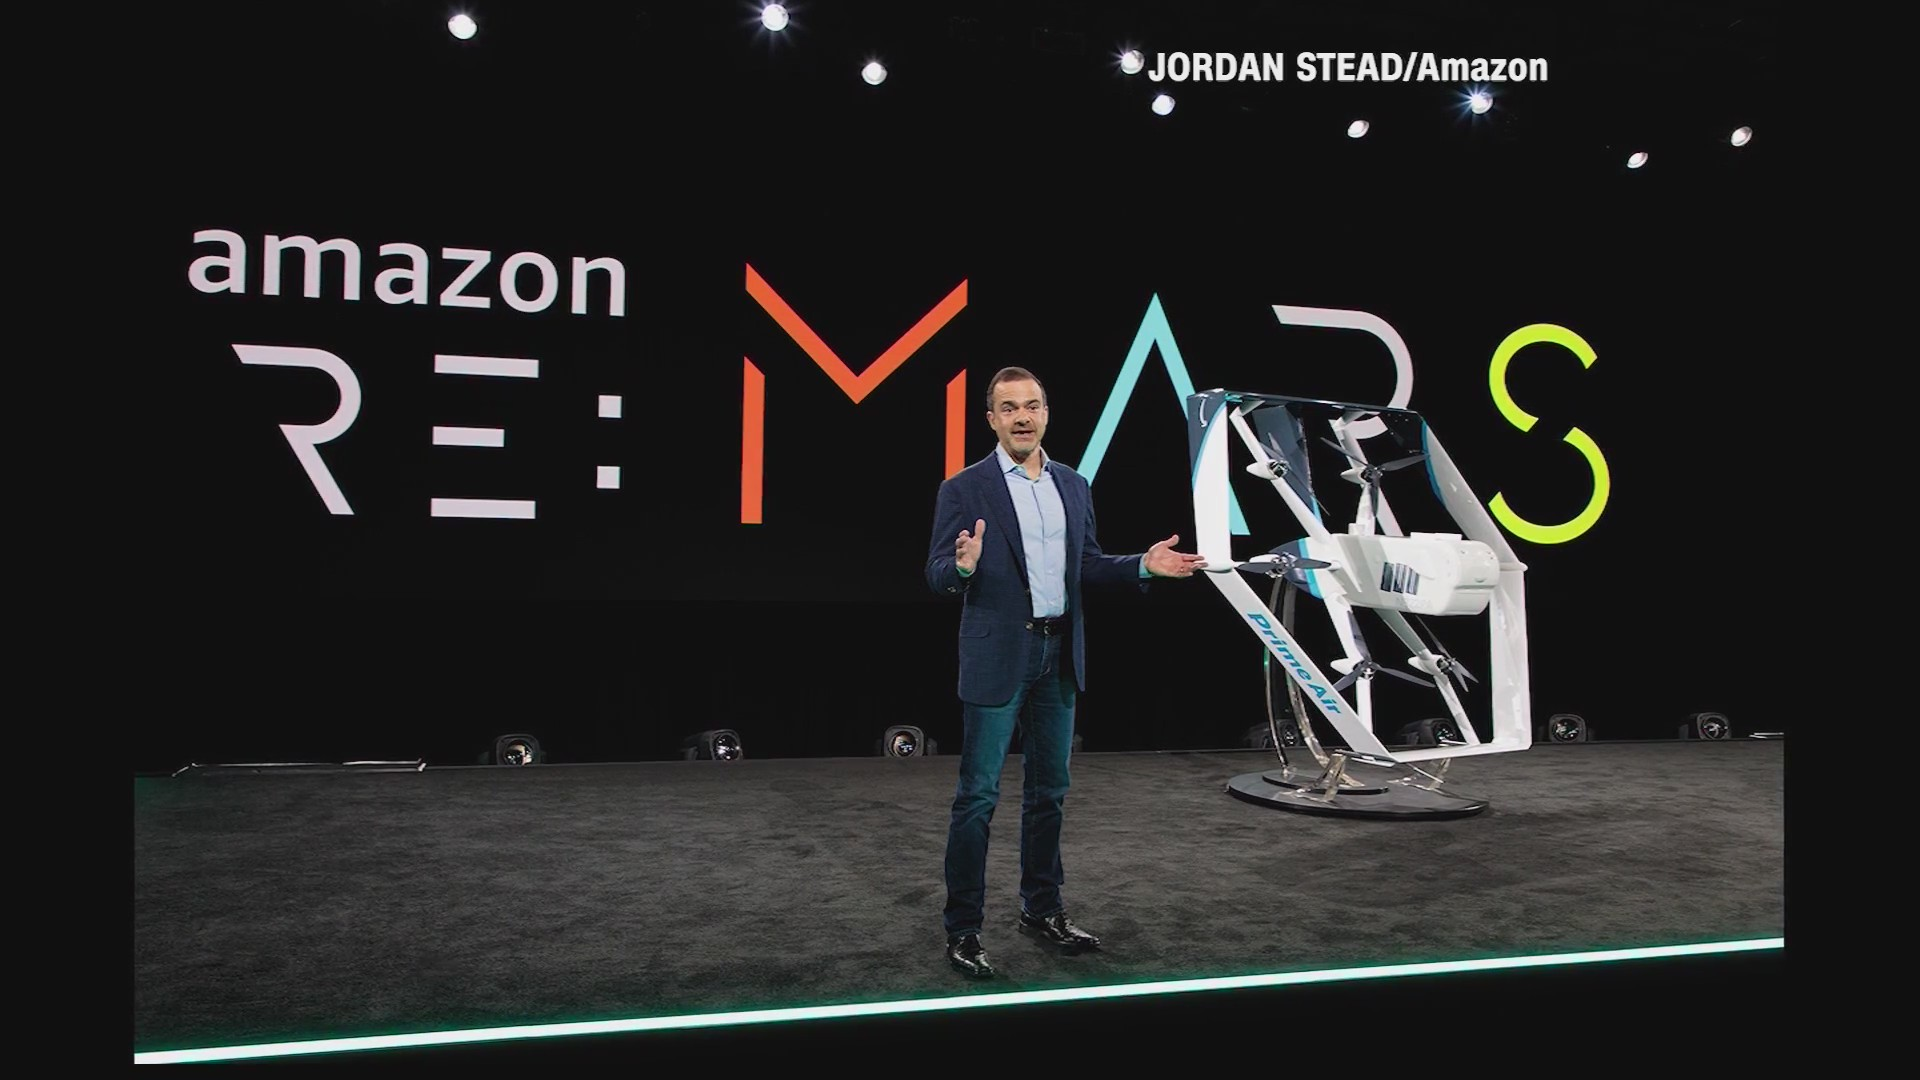 Amazon_set_to_start_delivering_with_dron_0_20190606214709